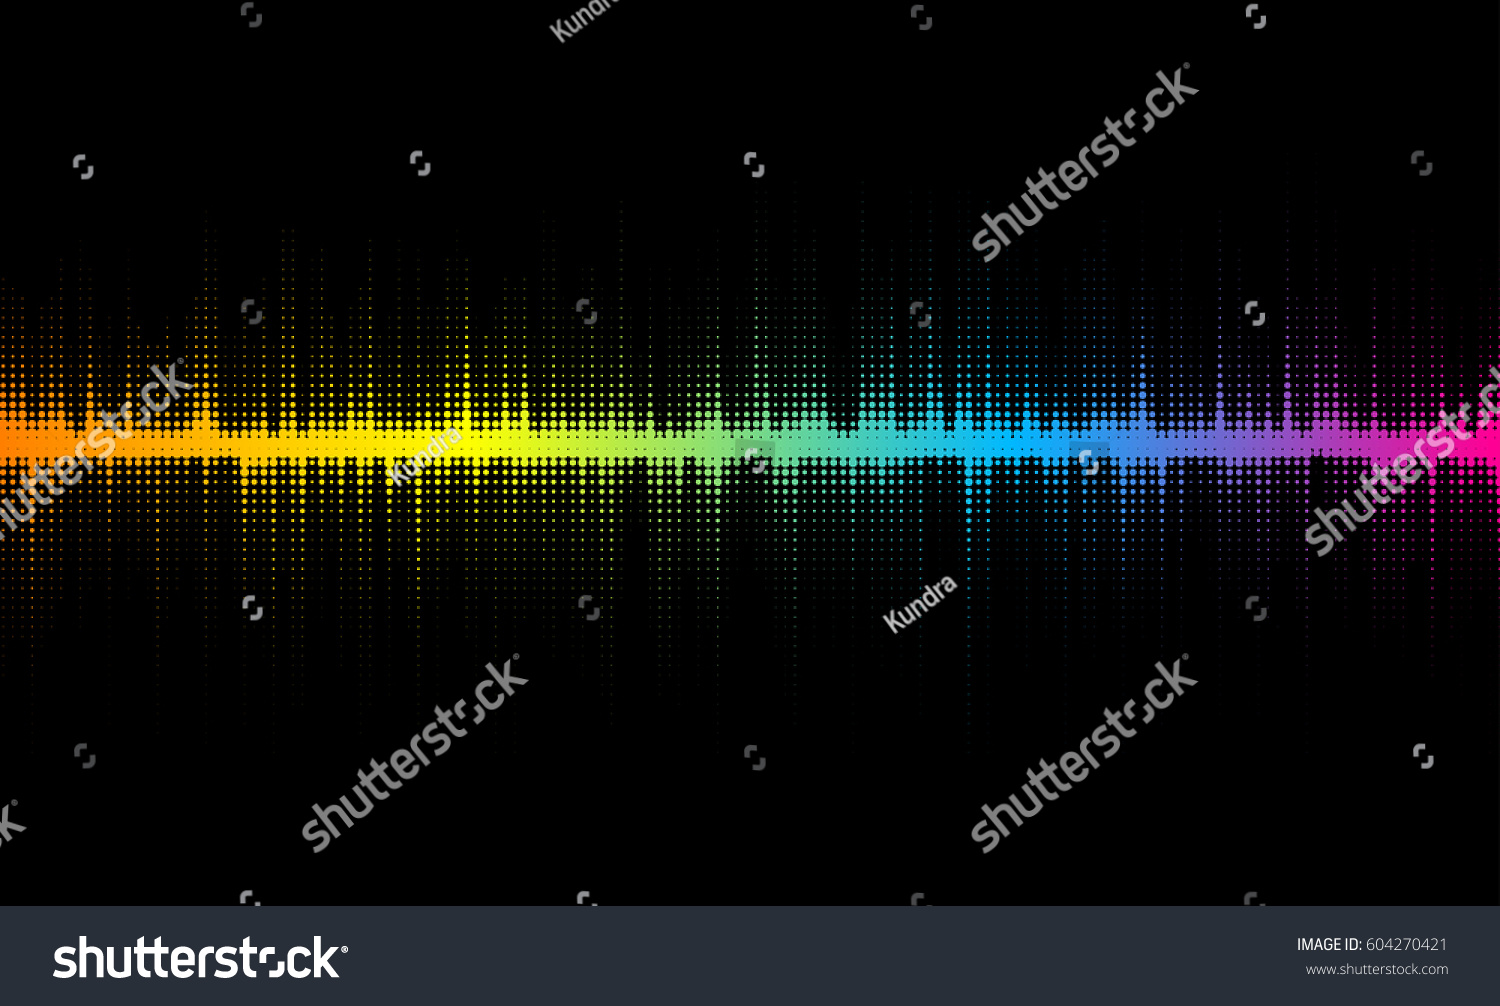 Vector Halftone Sound Wave Design Colorful Element For Musical Backgrounds